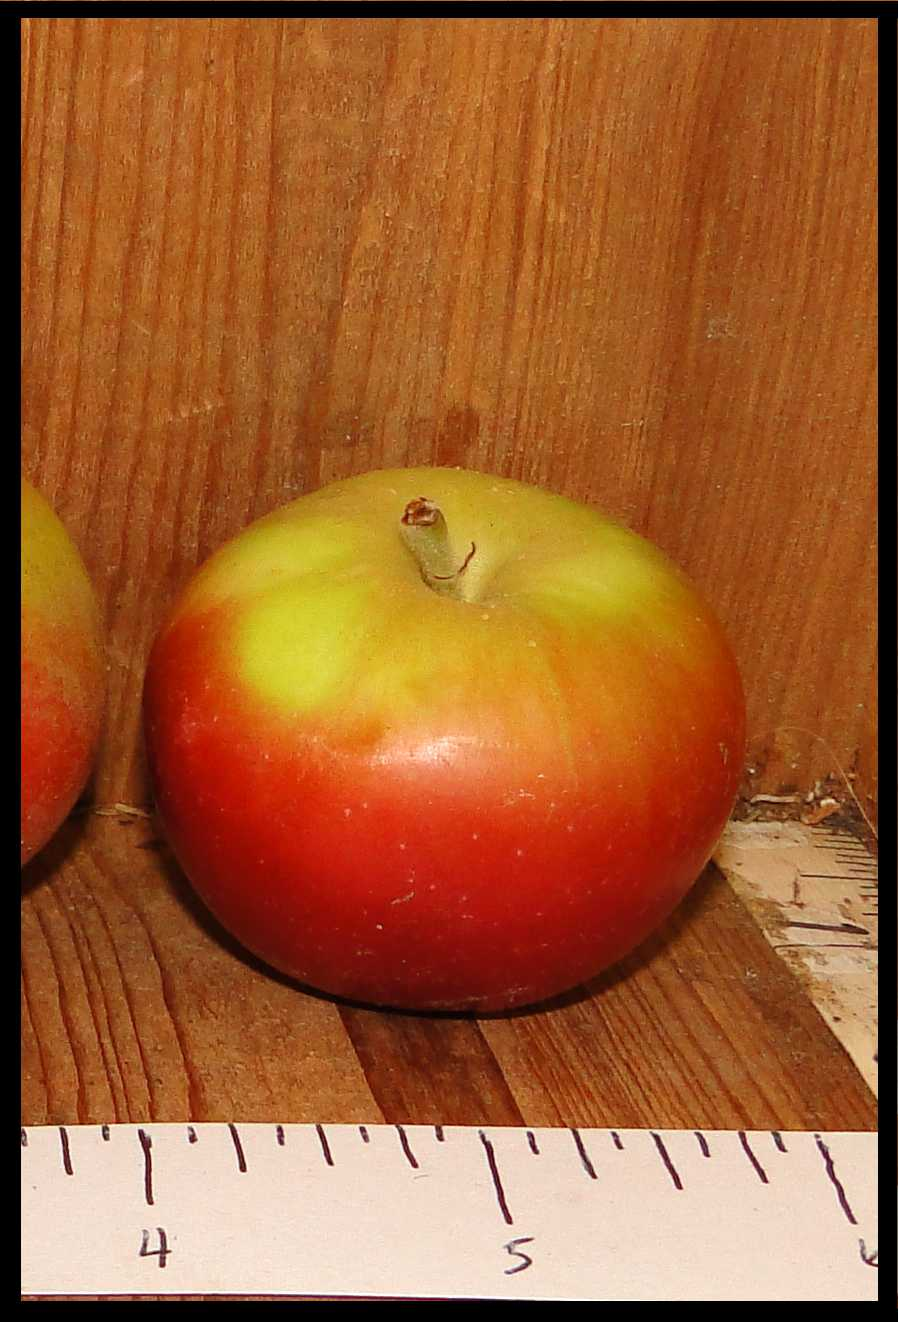 smooth round apple red on bottom and yellow on top